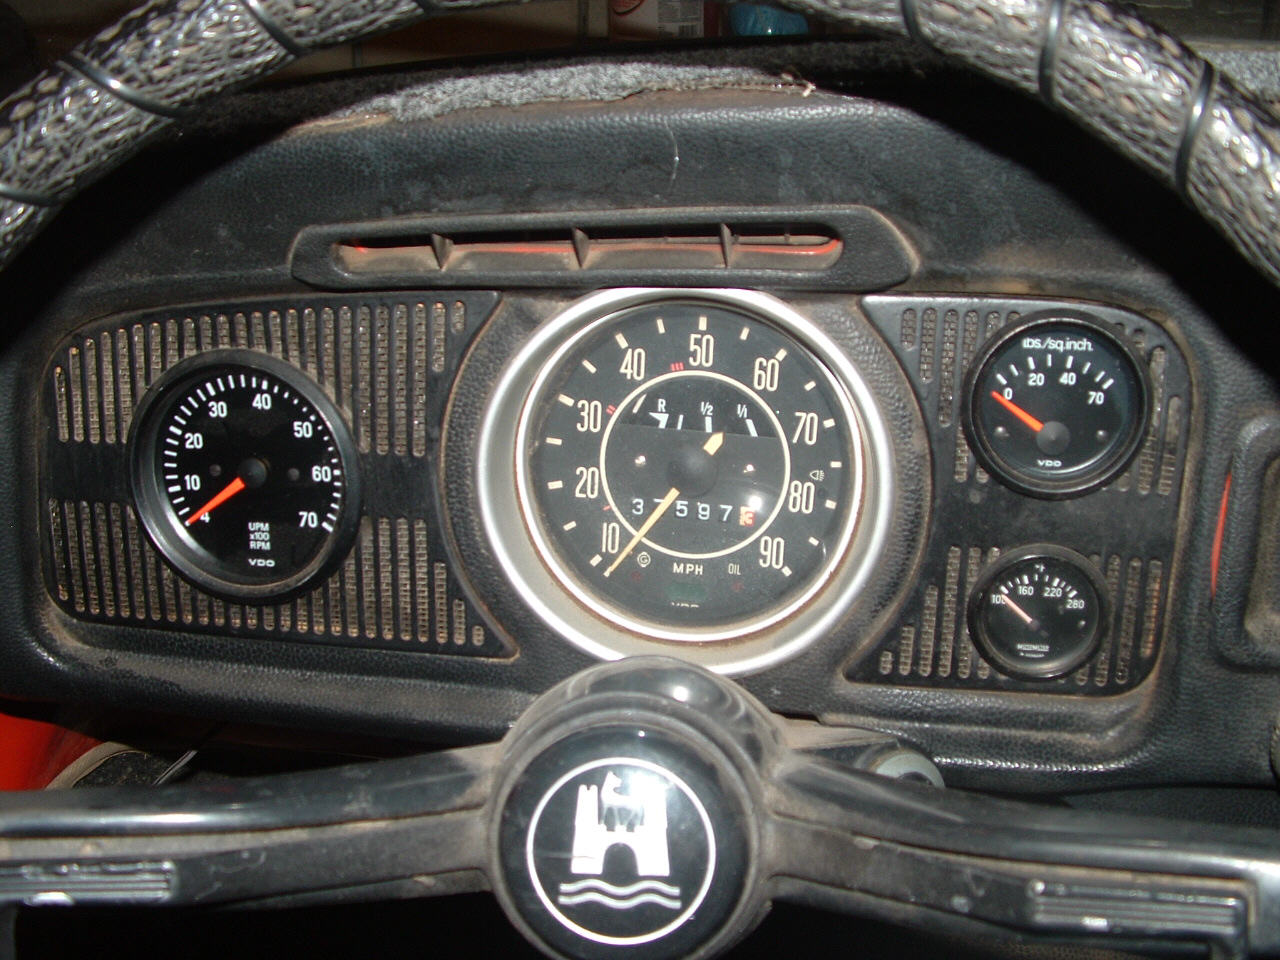 1973 Vw Beetle Instrument Cluster Wiring Diagram 48 Of 1972 Bug Engine Image May Have Been Reduced In Size Click To View Fullscreen